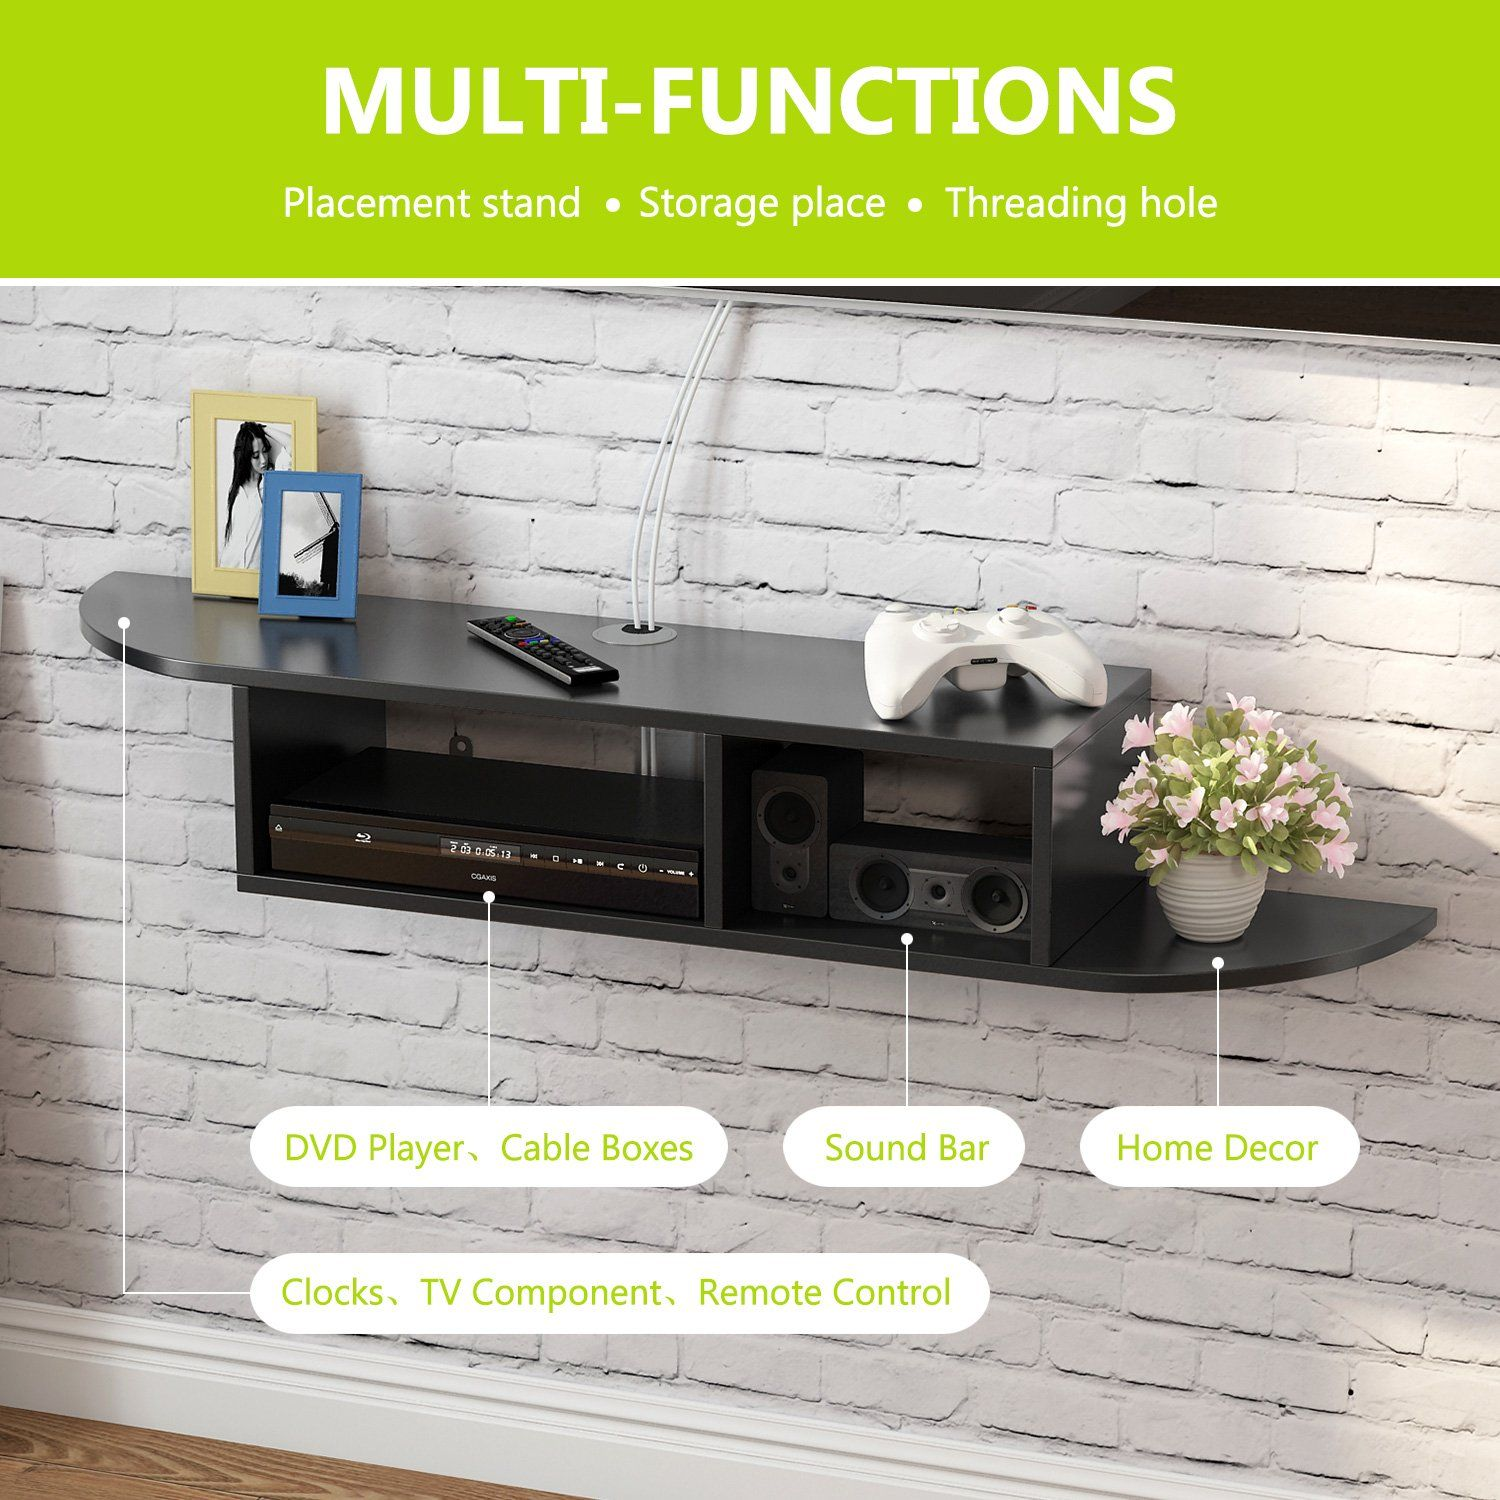 Tribesigns 2 Tier Modern Wall Mount Floating Shelf Tv Console 43 3x9 4x7 Inch For Cable Boxes Routers Console Shelf Floating Wall Rustic Wood Floating Shelves